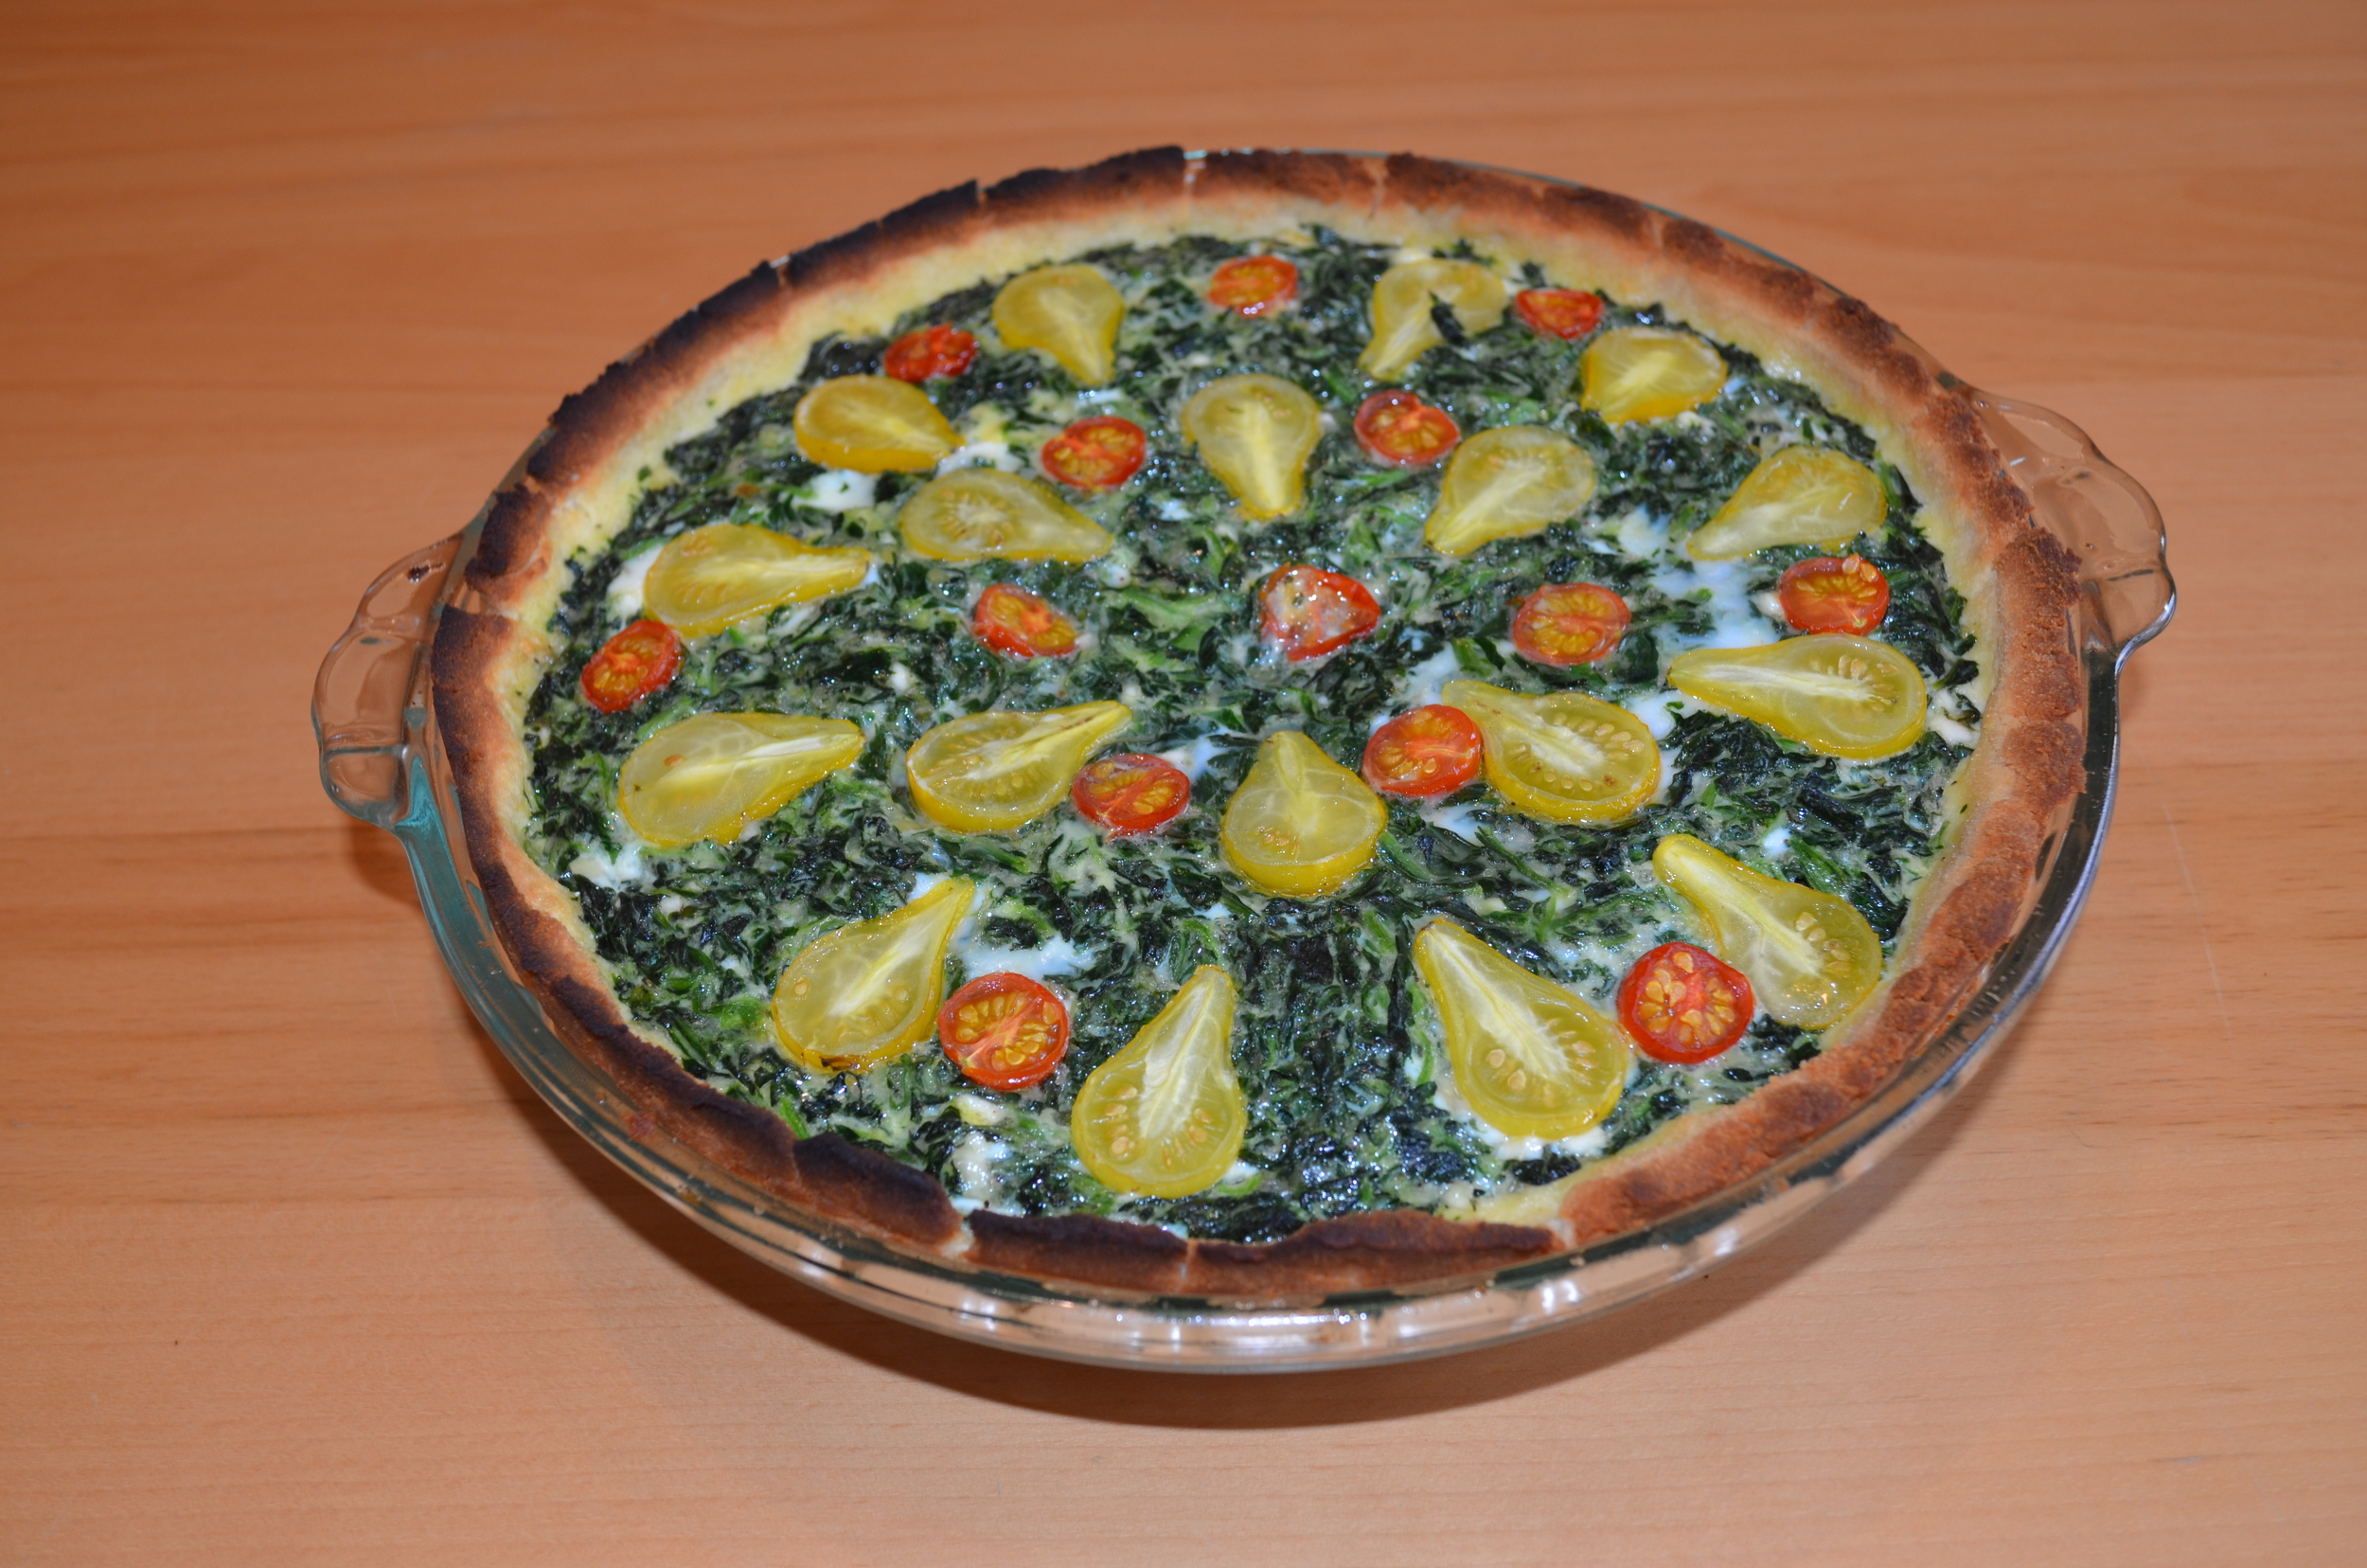 Mediterranean Quiche with Coconut Flour Crust